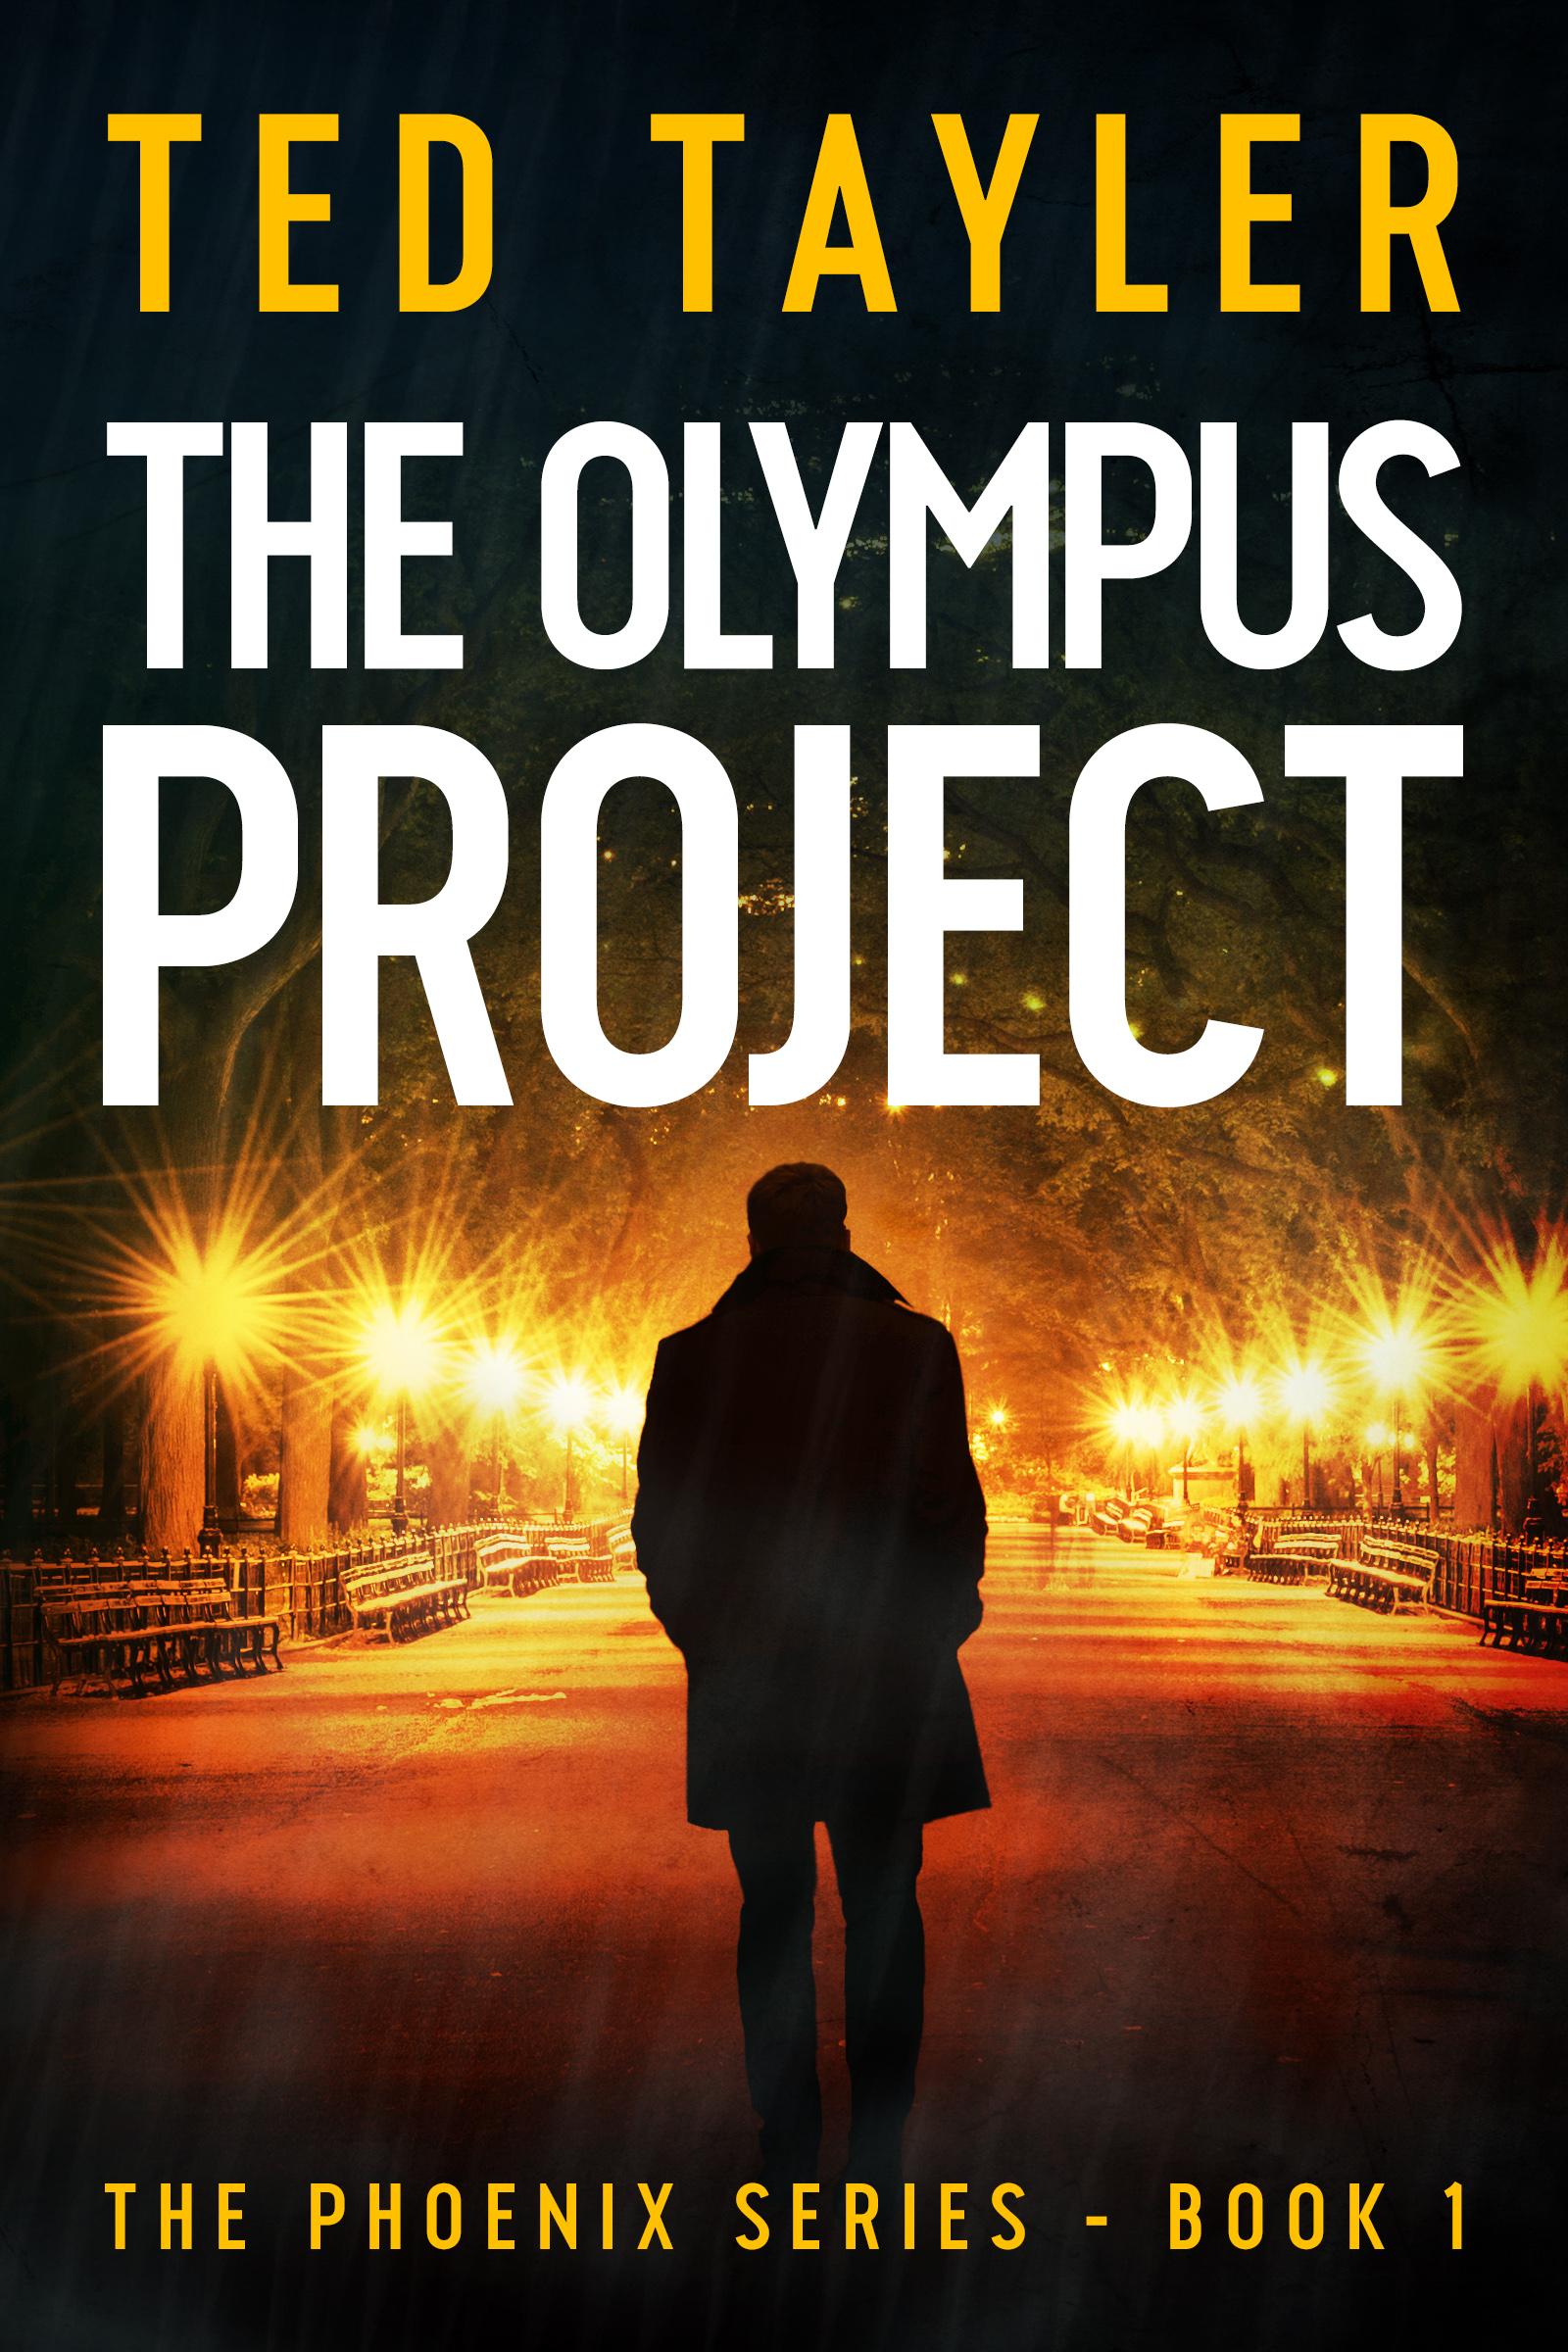 THE-OLYMPUS-PROJECT-COMPLETE.jpg